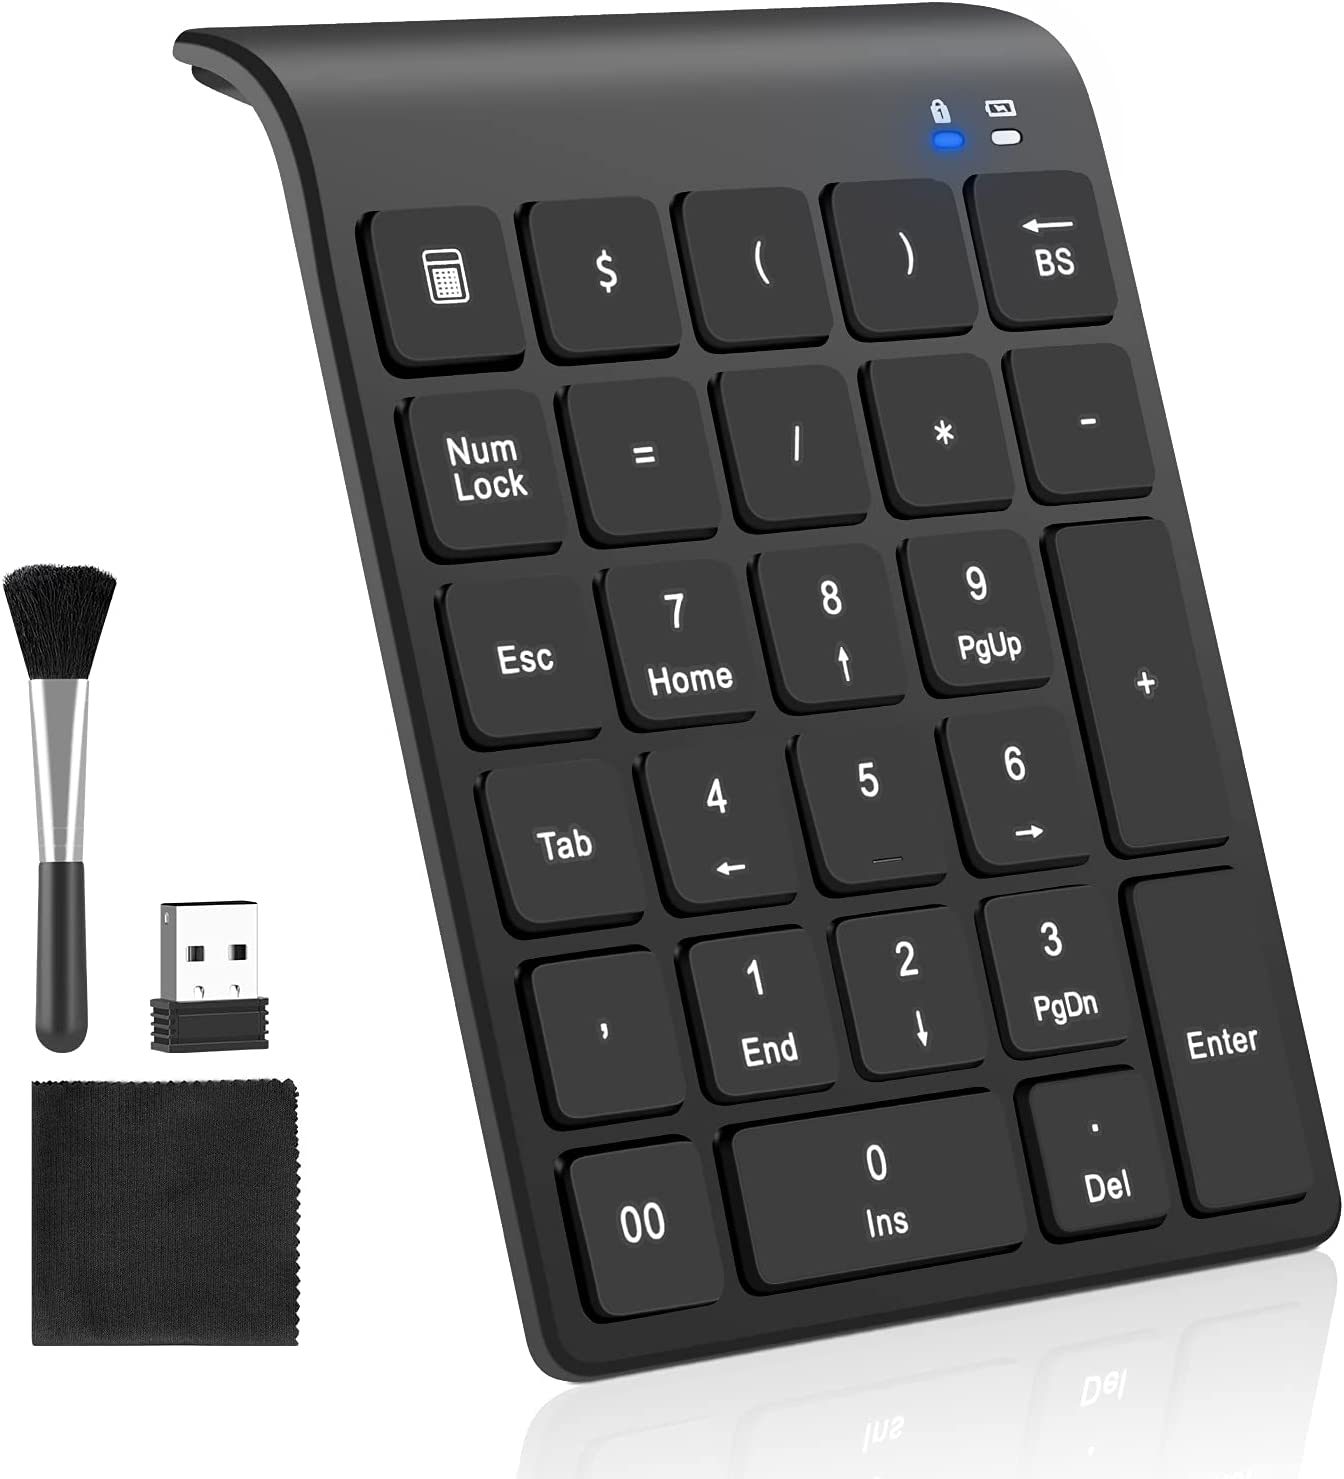 Number Pad, 27 Keys Portable USB Wireless Numeric Keypad with Clean Brush Slim Mini 2.4 G Financial Accounting Numeric Pad Extensions for MacBook, MacBook Air/Pro,Notebook, Desktop,Laptop,PC(Black)